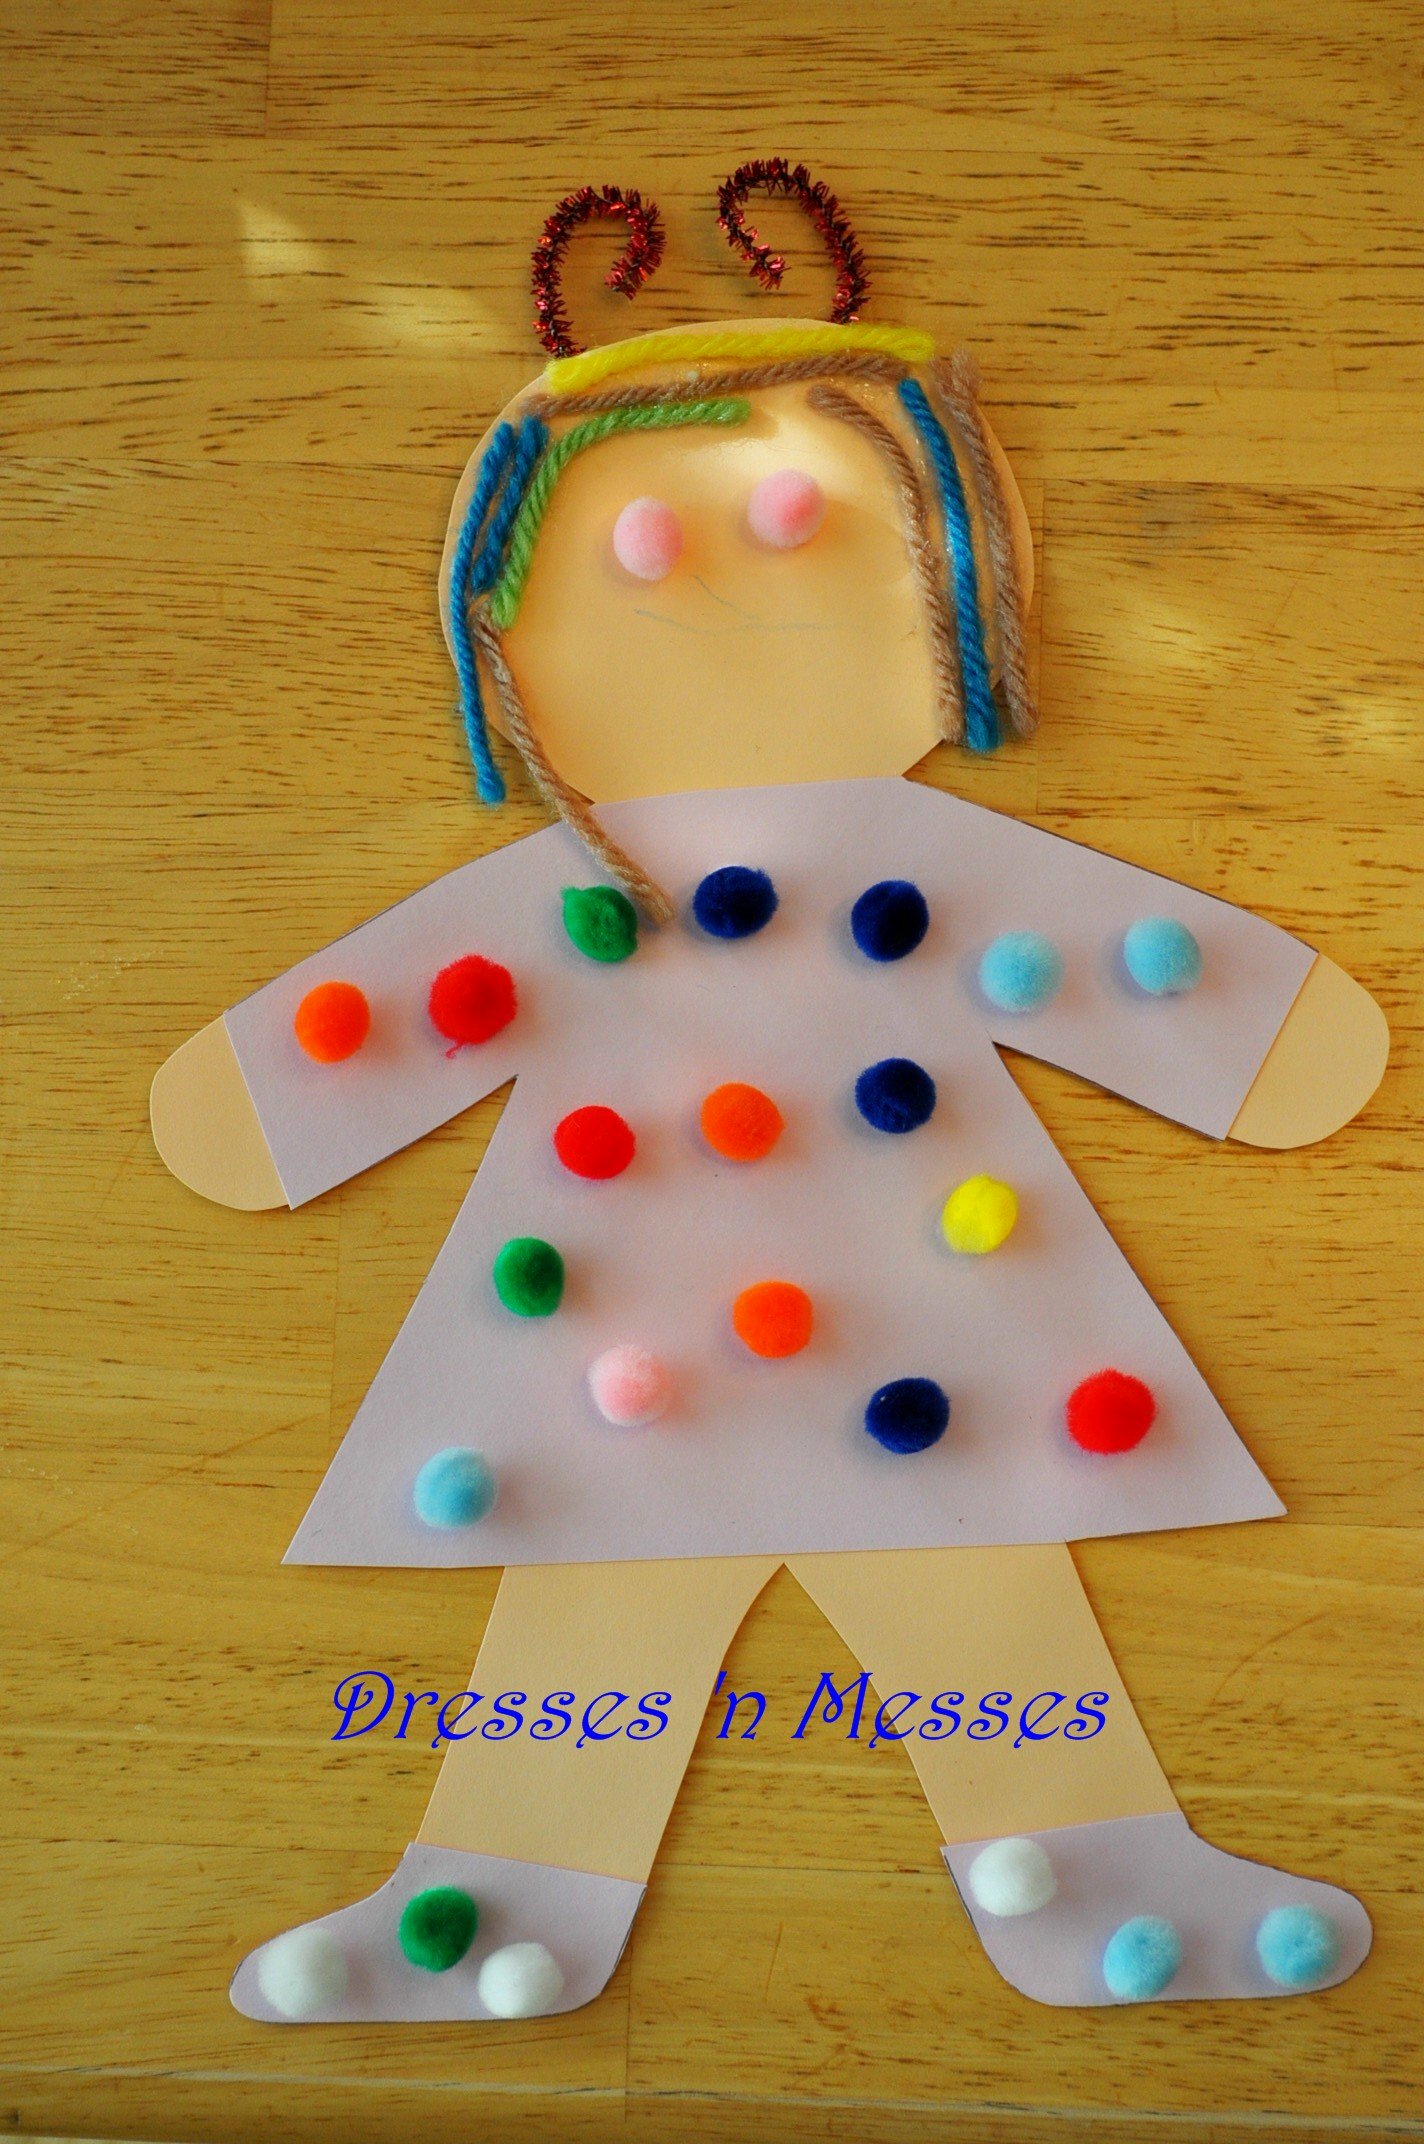 All about me theme dresses 39 n messes for All about me toddler crafts